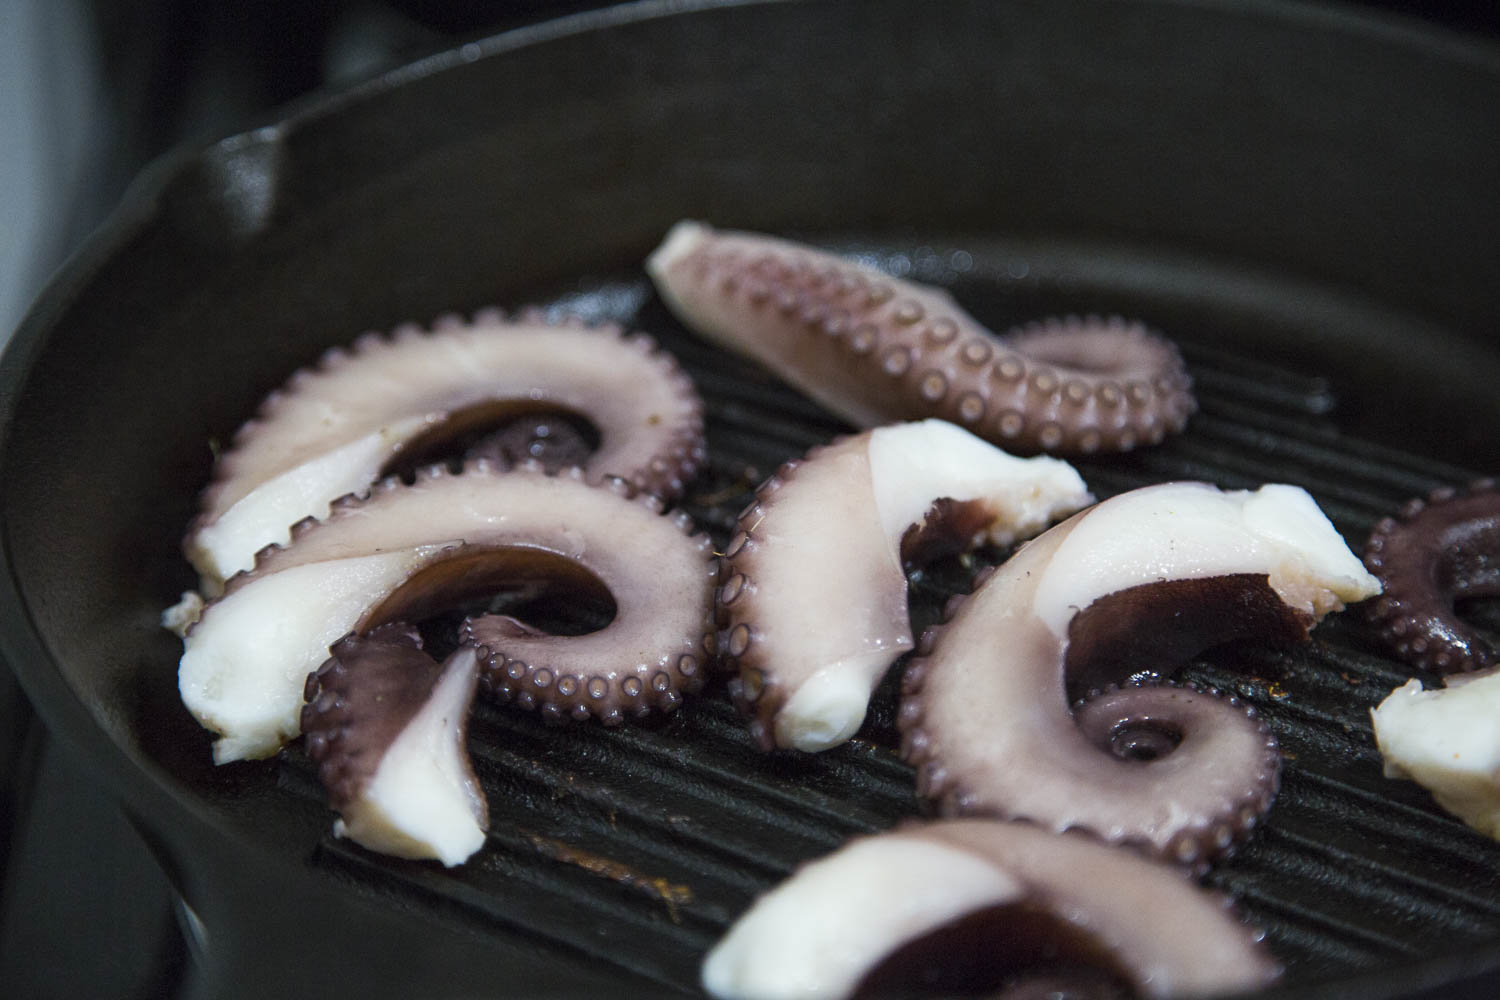 Octopus ready to grill